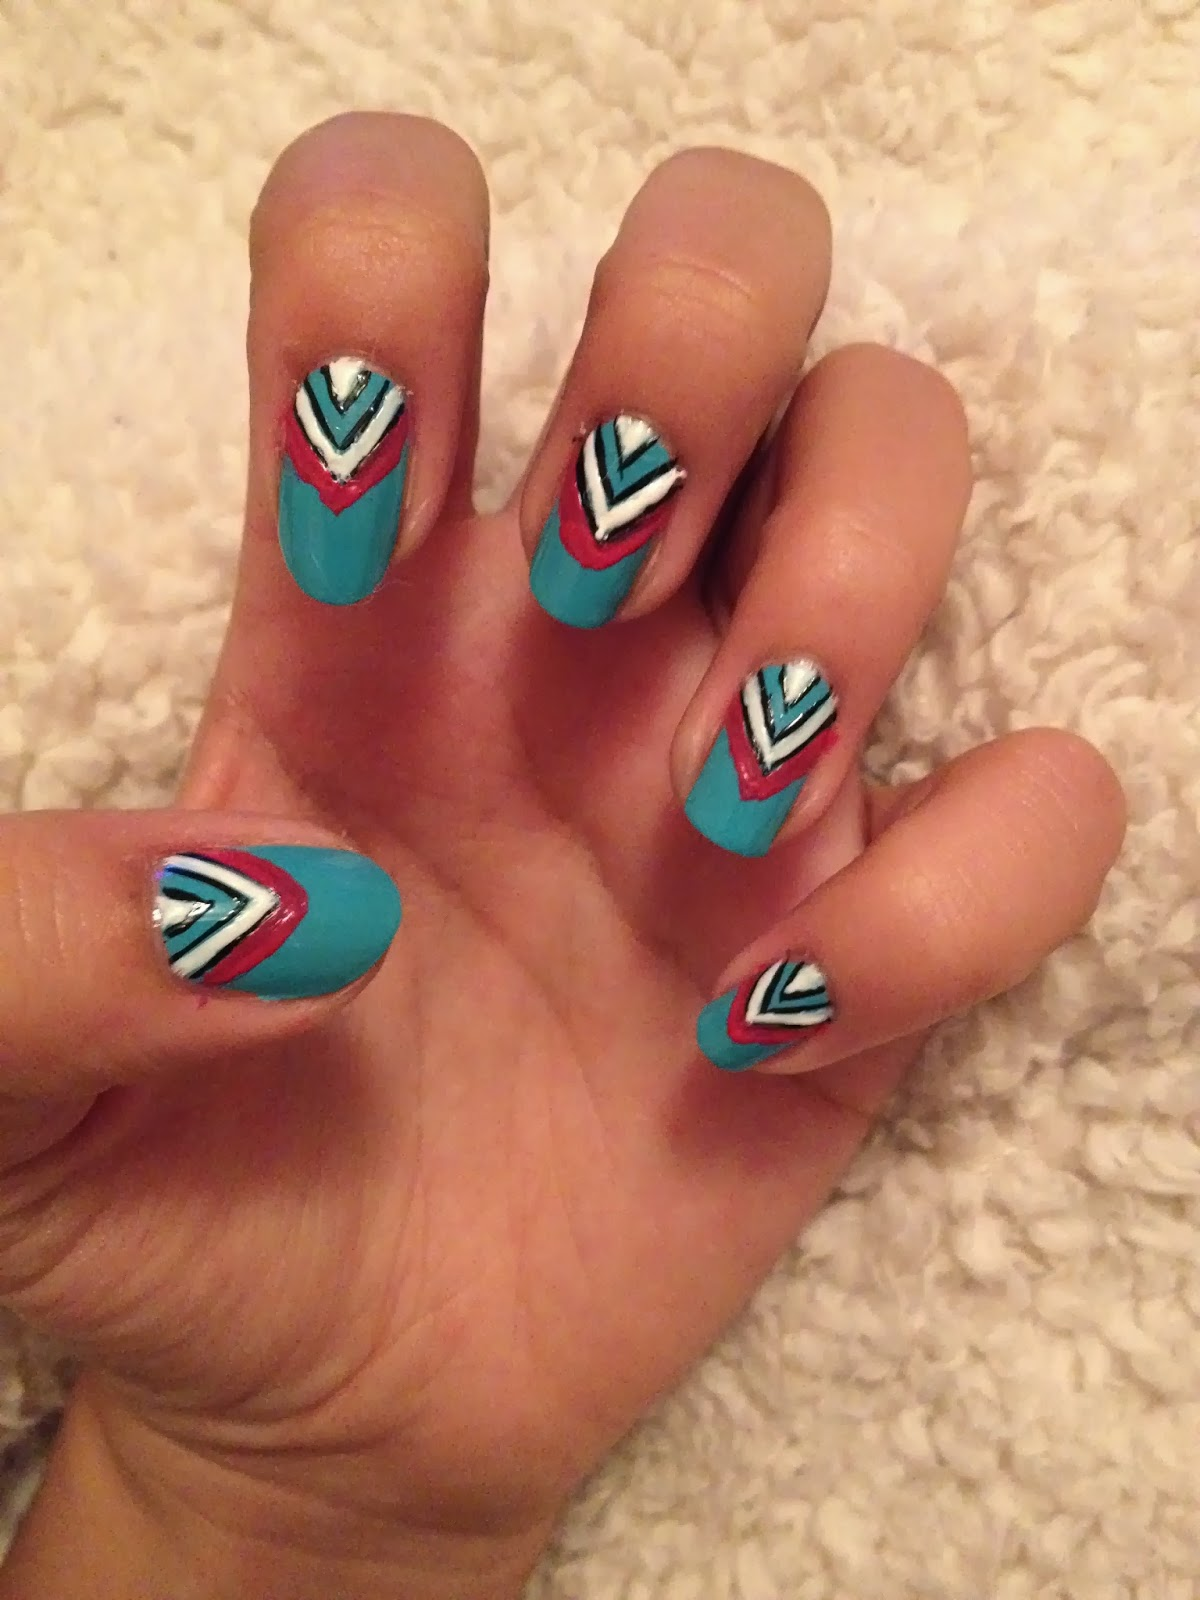 Charlie distracted nail art step 5 use the black nail art pen to draw symmetrical dots all up the pink line to finish prinsesfo Choice Image